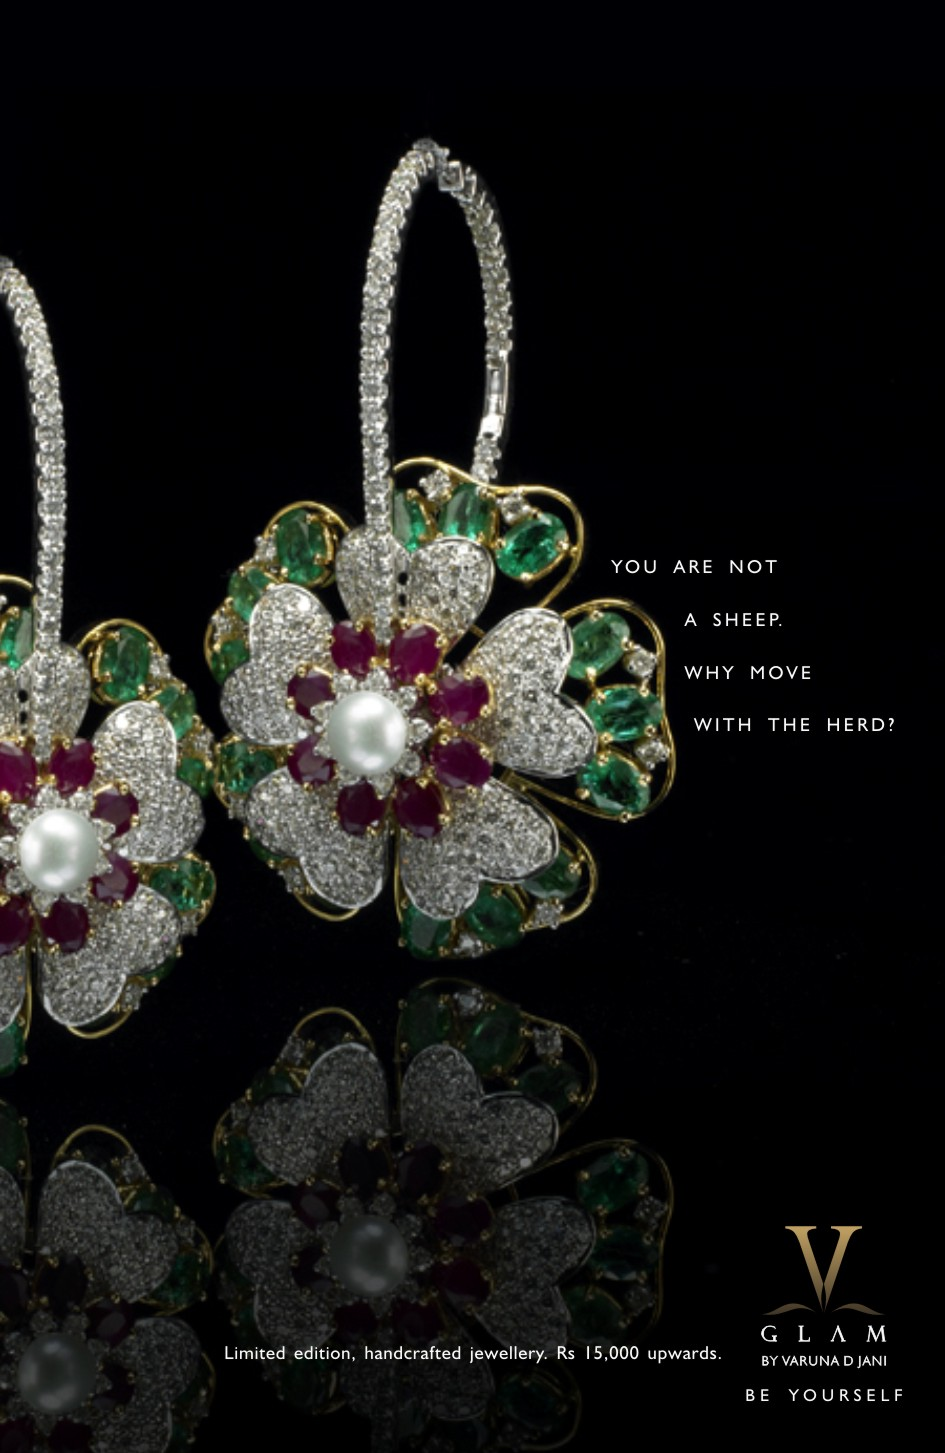 V Glam Fine Jewellery: Express Your Individuality ( Print/Poster, India)